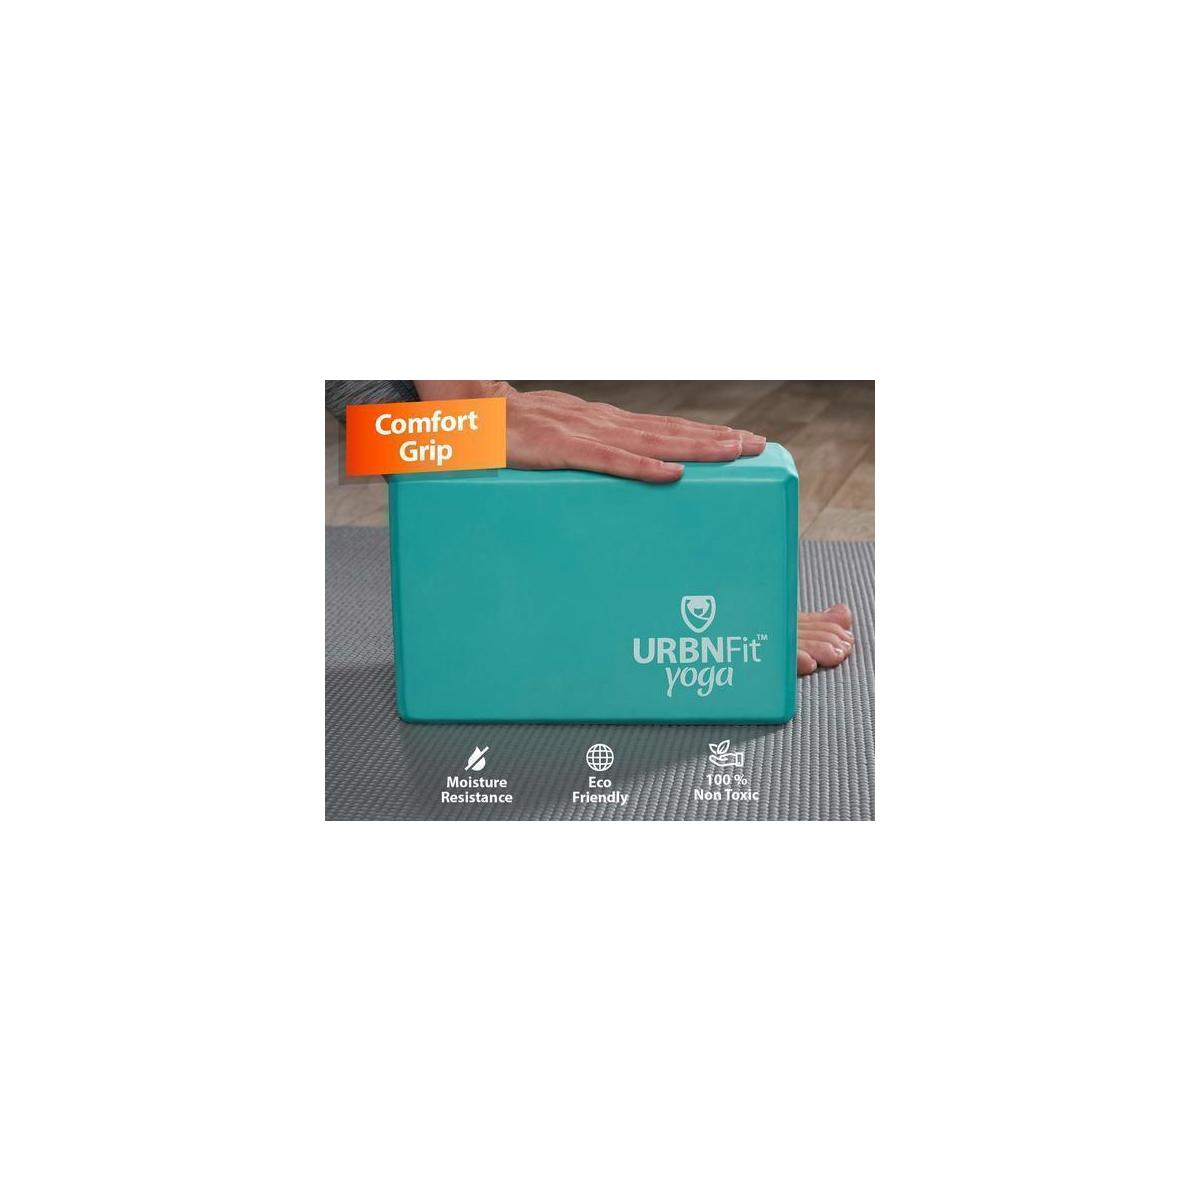 URBNFit Yoga Block - Moisture Resistant High Density EVA Foam and Cotton - Improve Balance and Flexibility Perfect for Gym or Home - Free PDF Workout Guide